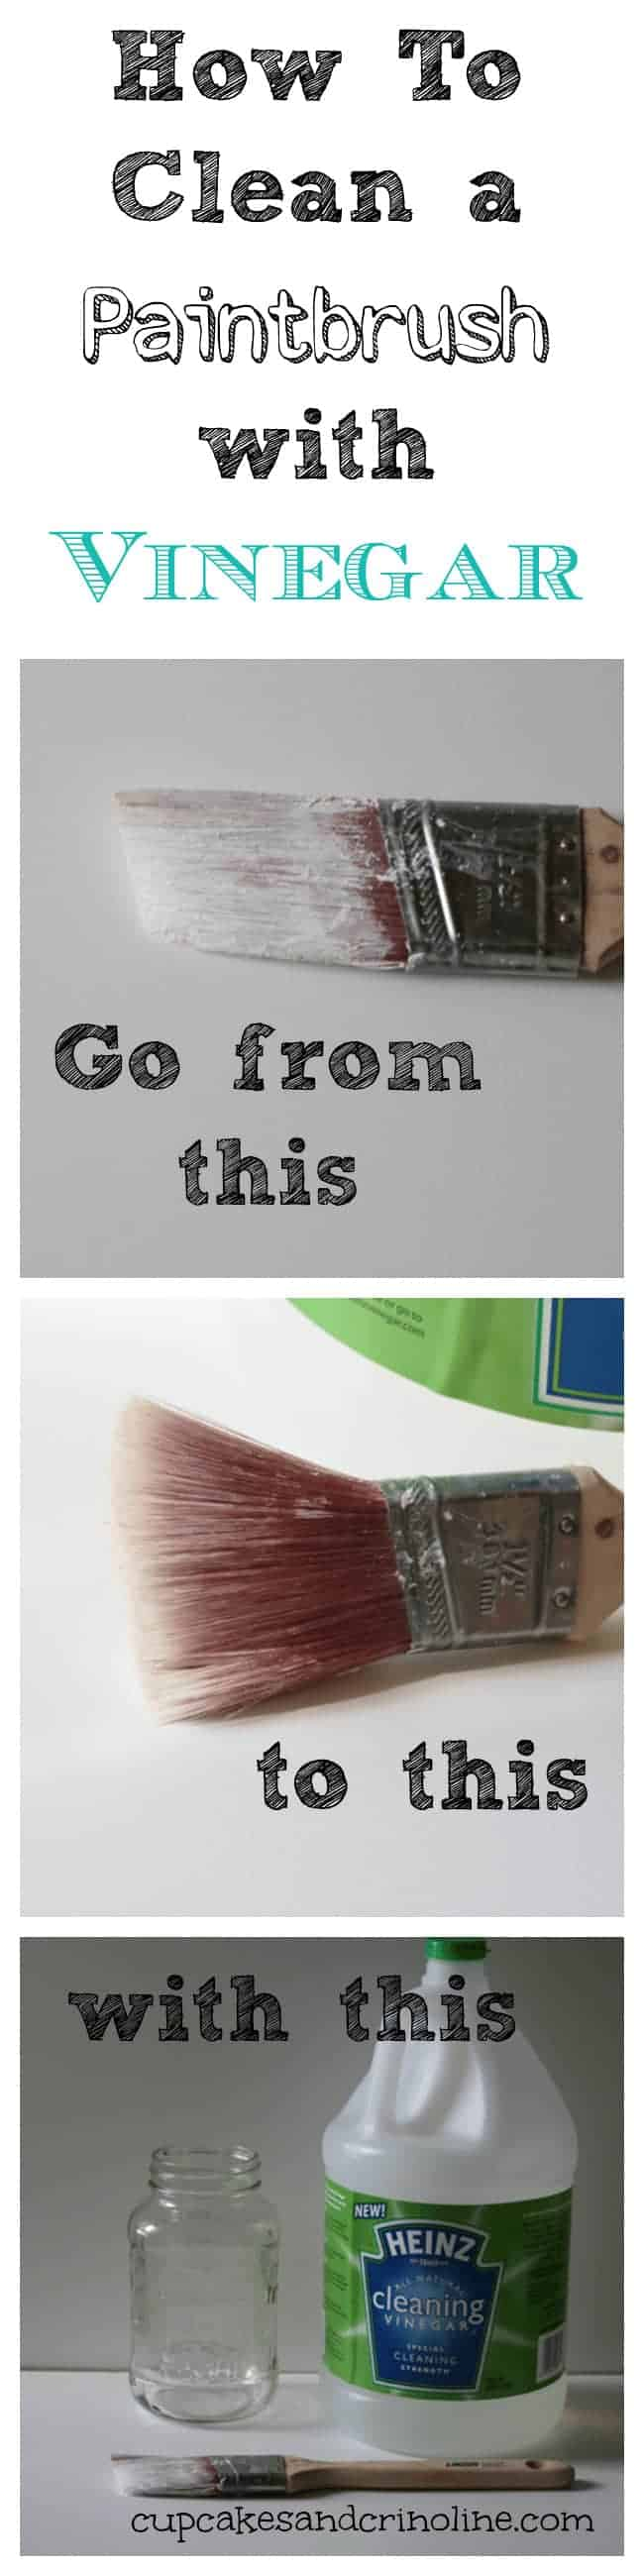 How to clean a paintbrush with vinegar.